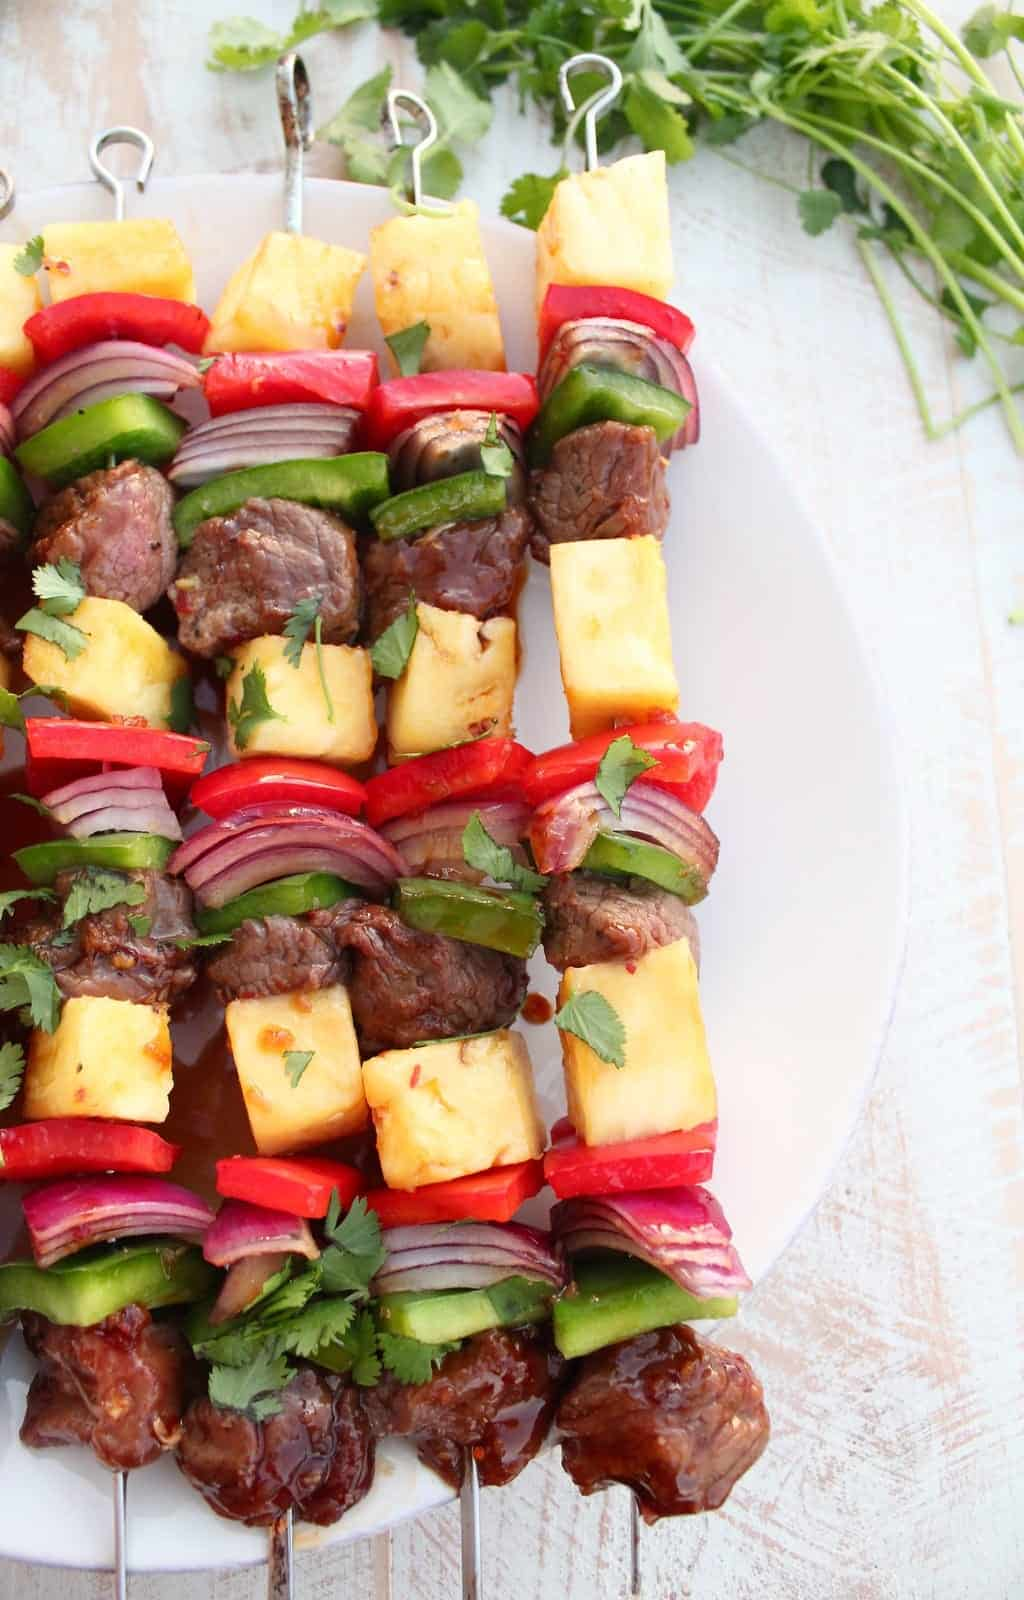 Teriyaki Steak Shish Kabob